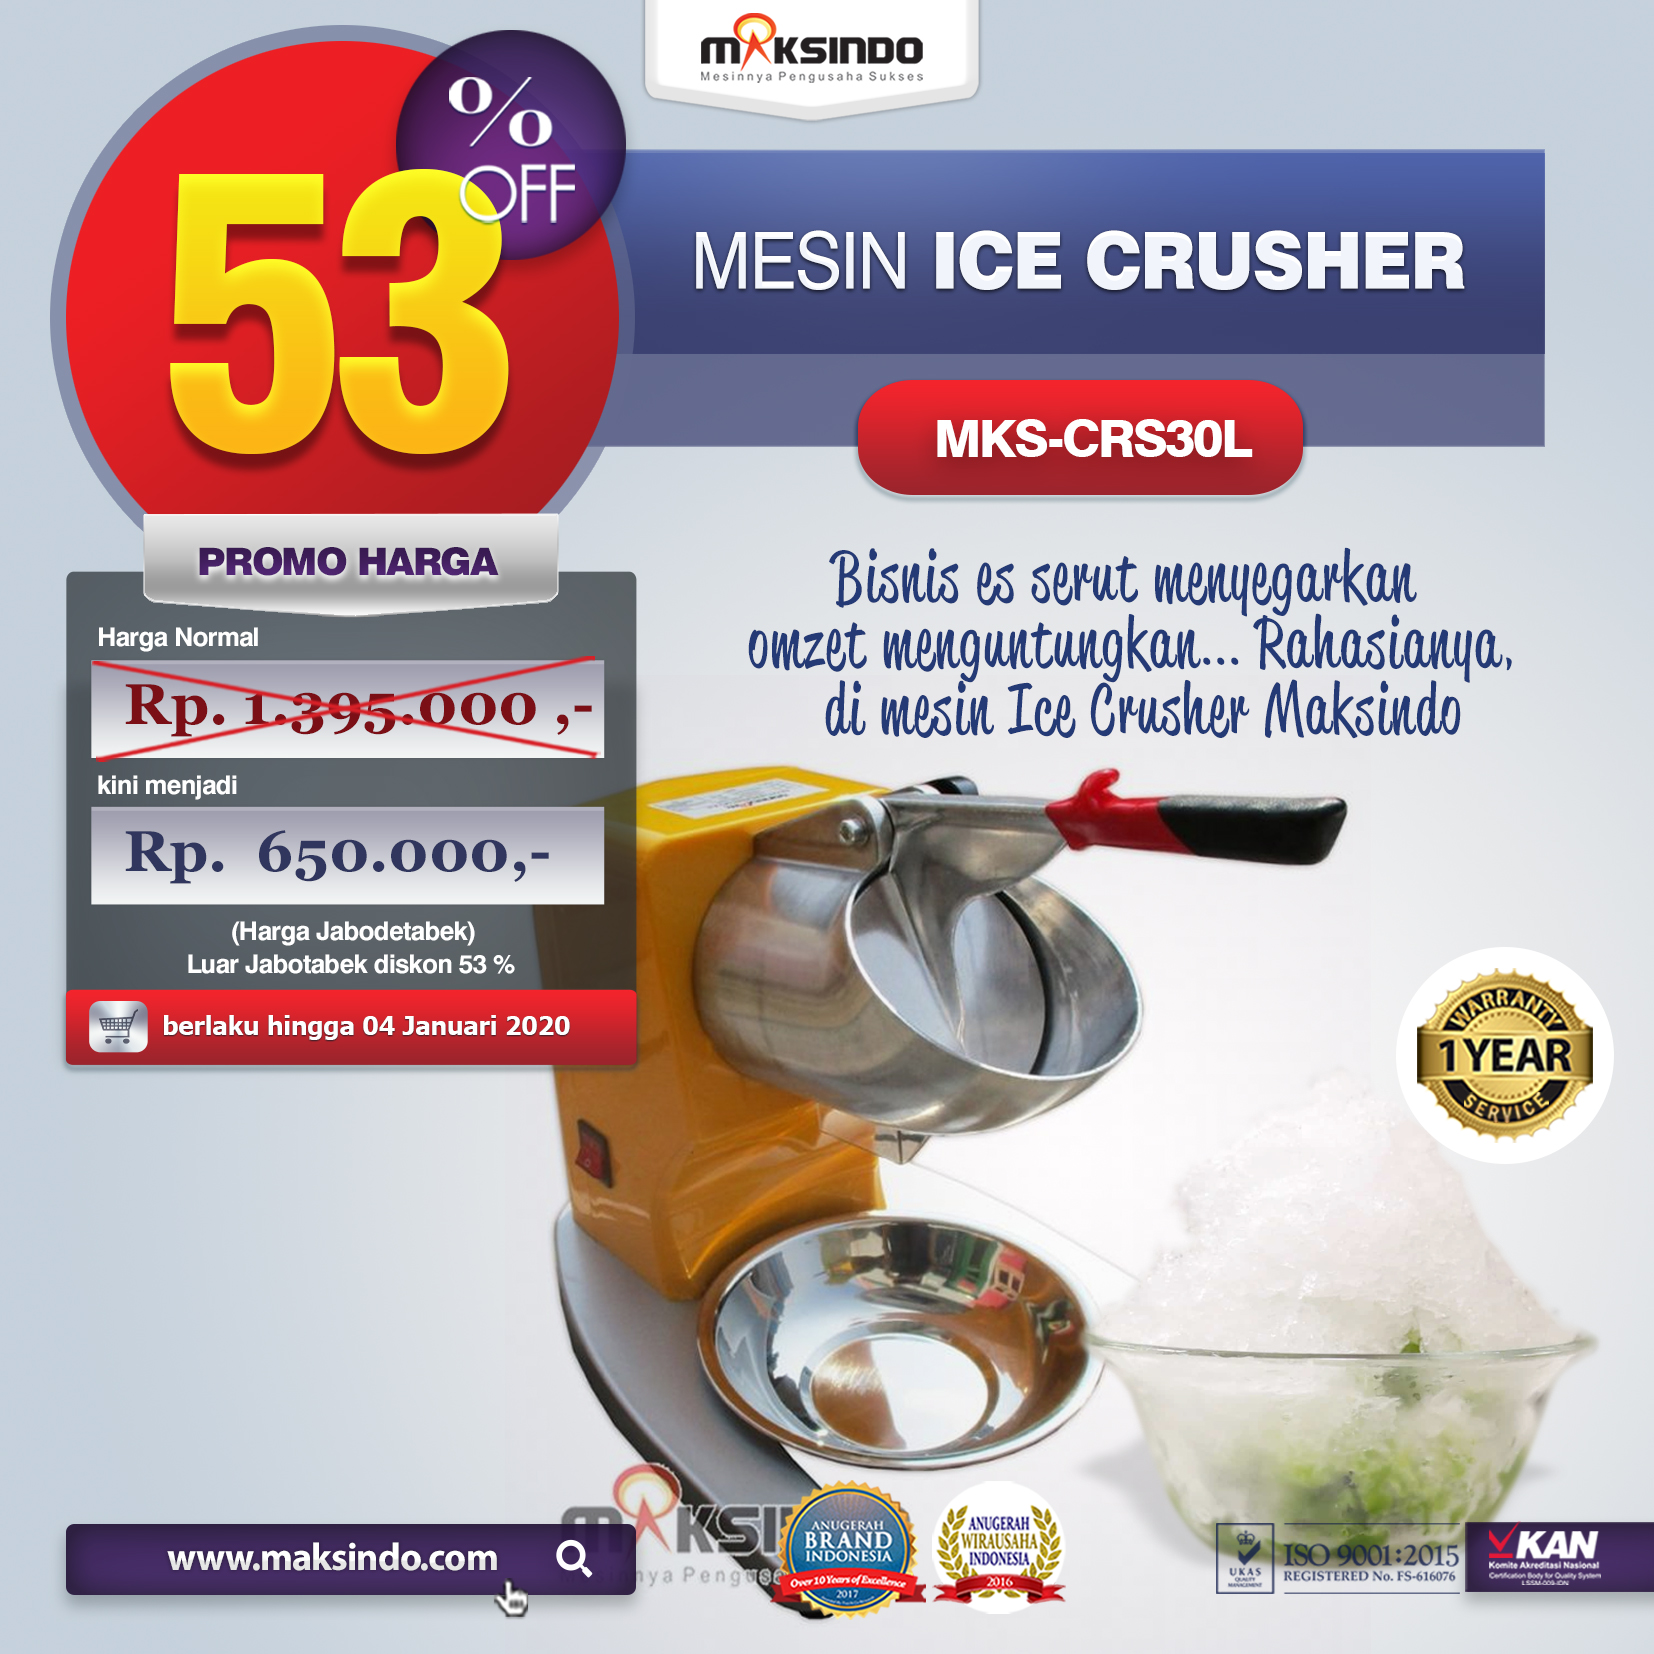 MKS CRS30L mesin ice crusher